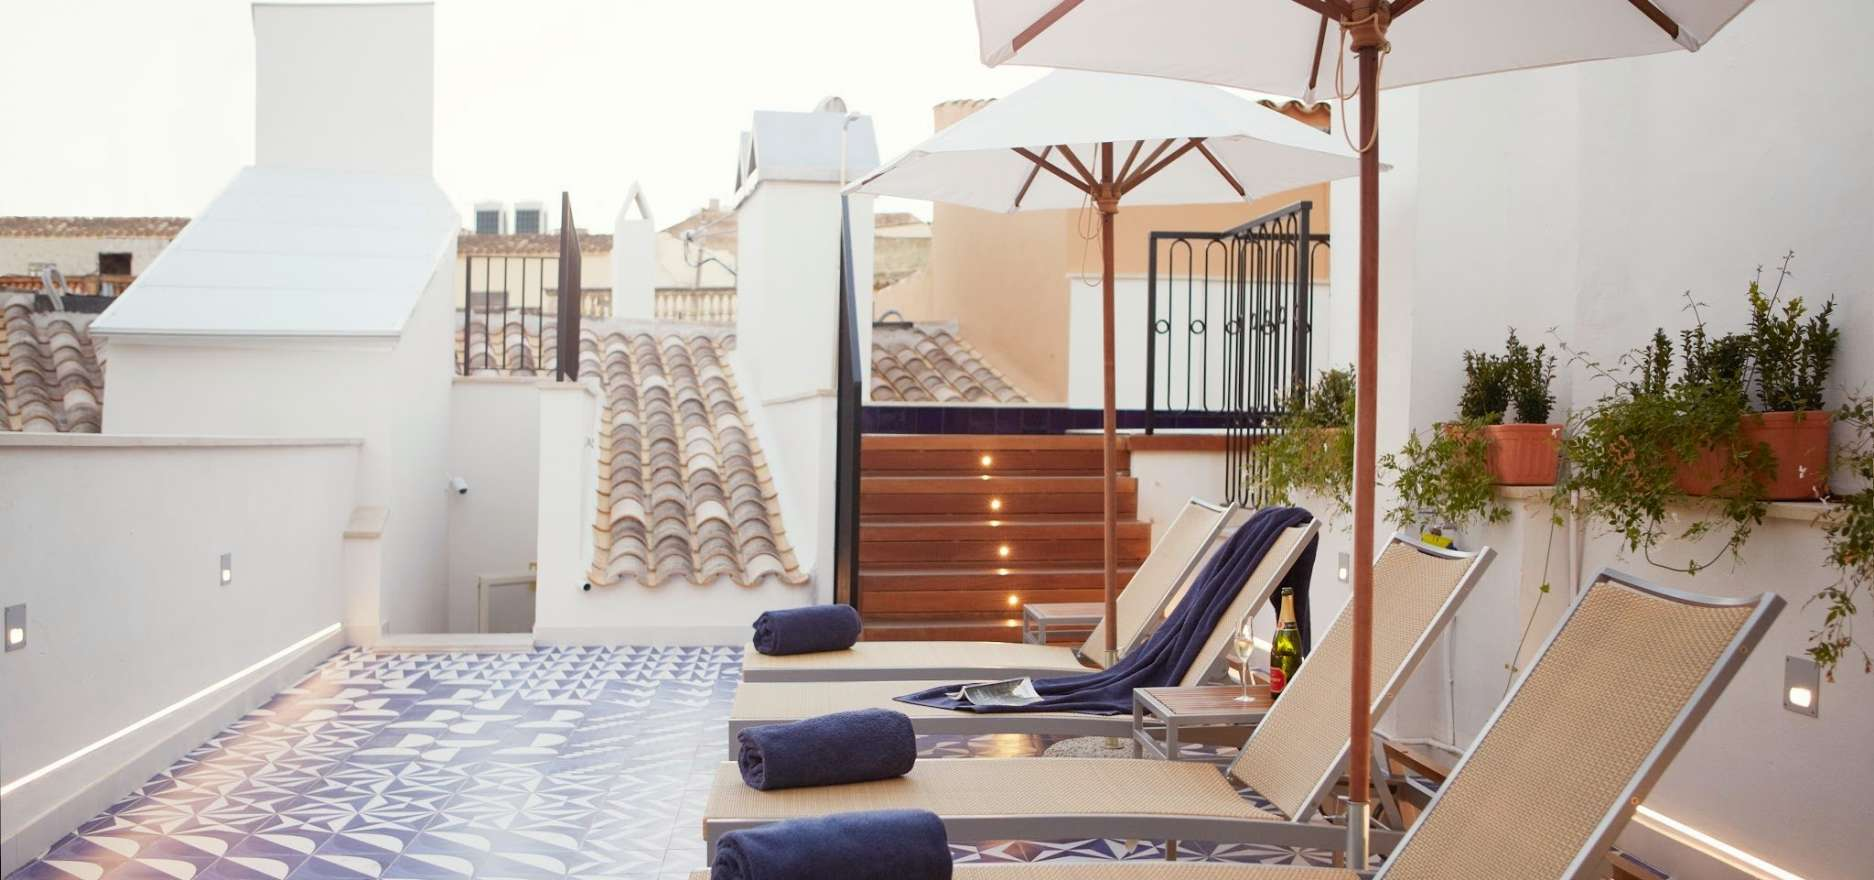 Relax on the Sun Terrace - Hotel Cort Design Hotel - Palma - Offers with MallorcanTonic